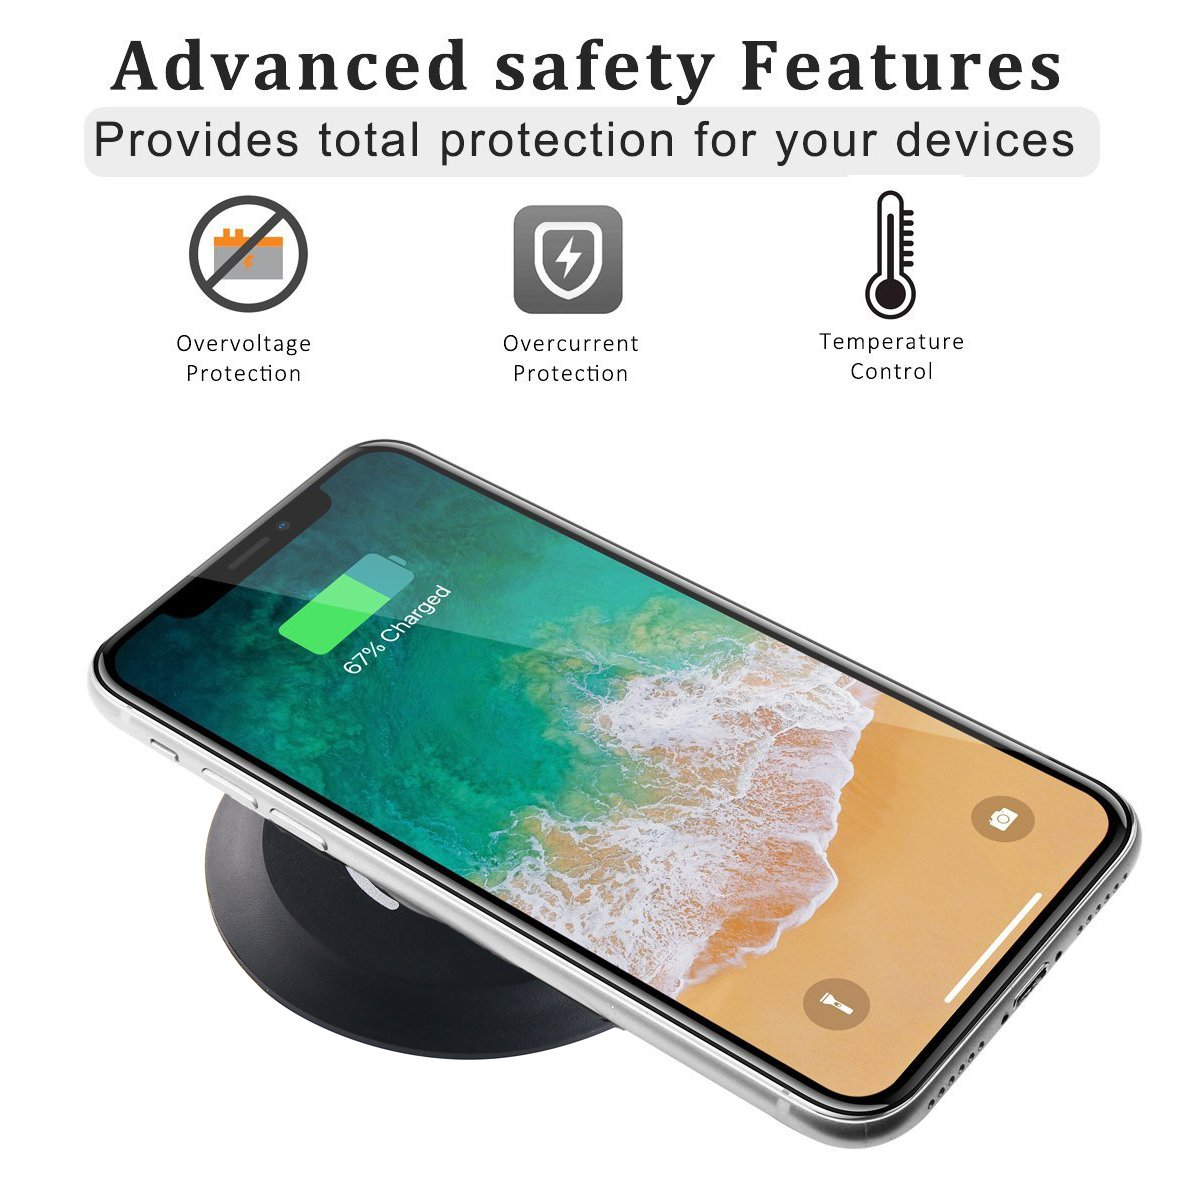 Desktop Wireless Charging Station for iPhone X iPhone 8 - Samsung Galaxy S8,QI Wireless Charger Grommet Hole In Desk Charging,Desk Grommet Wireless Charger(no adapter)